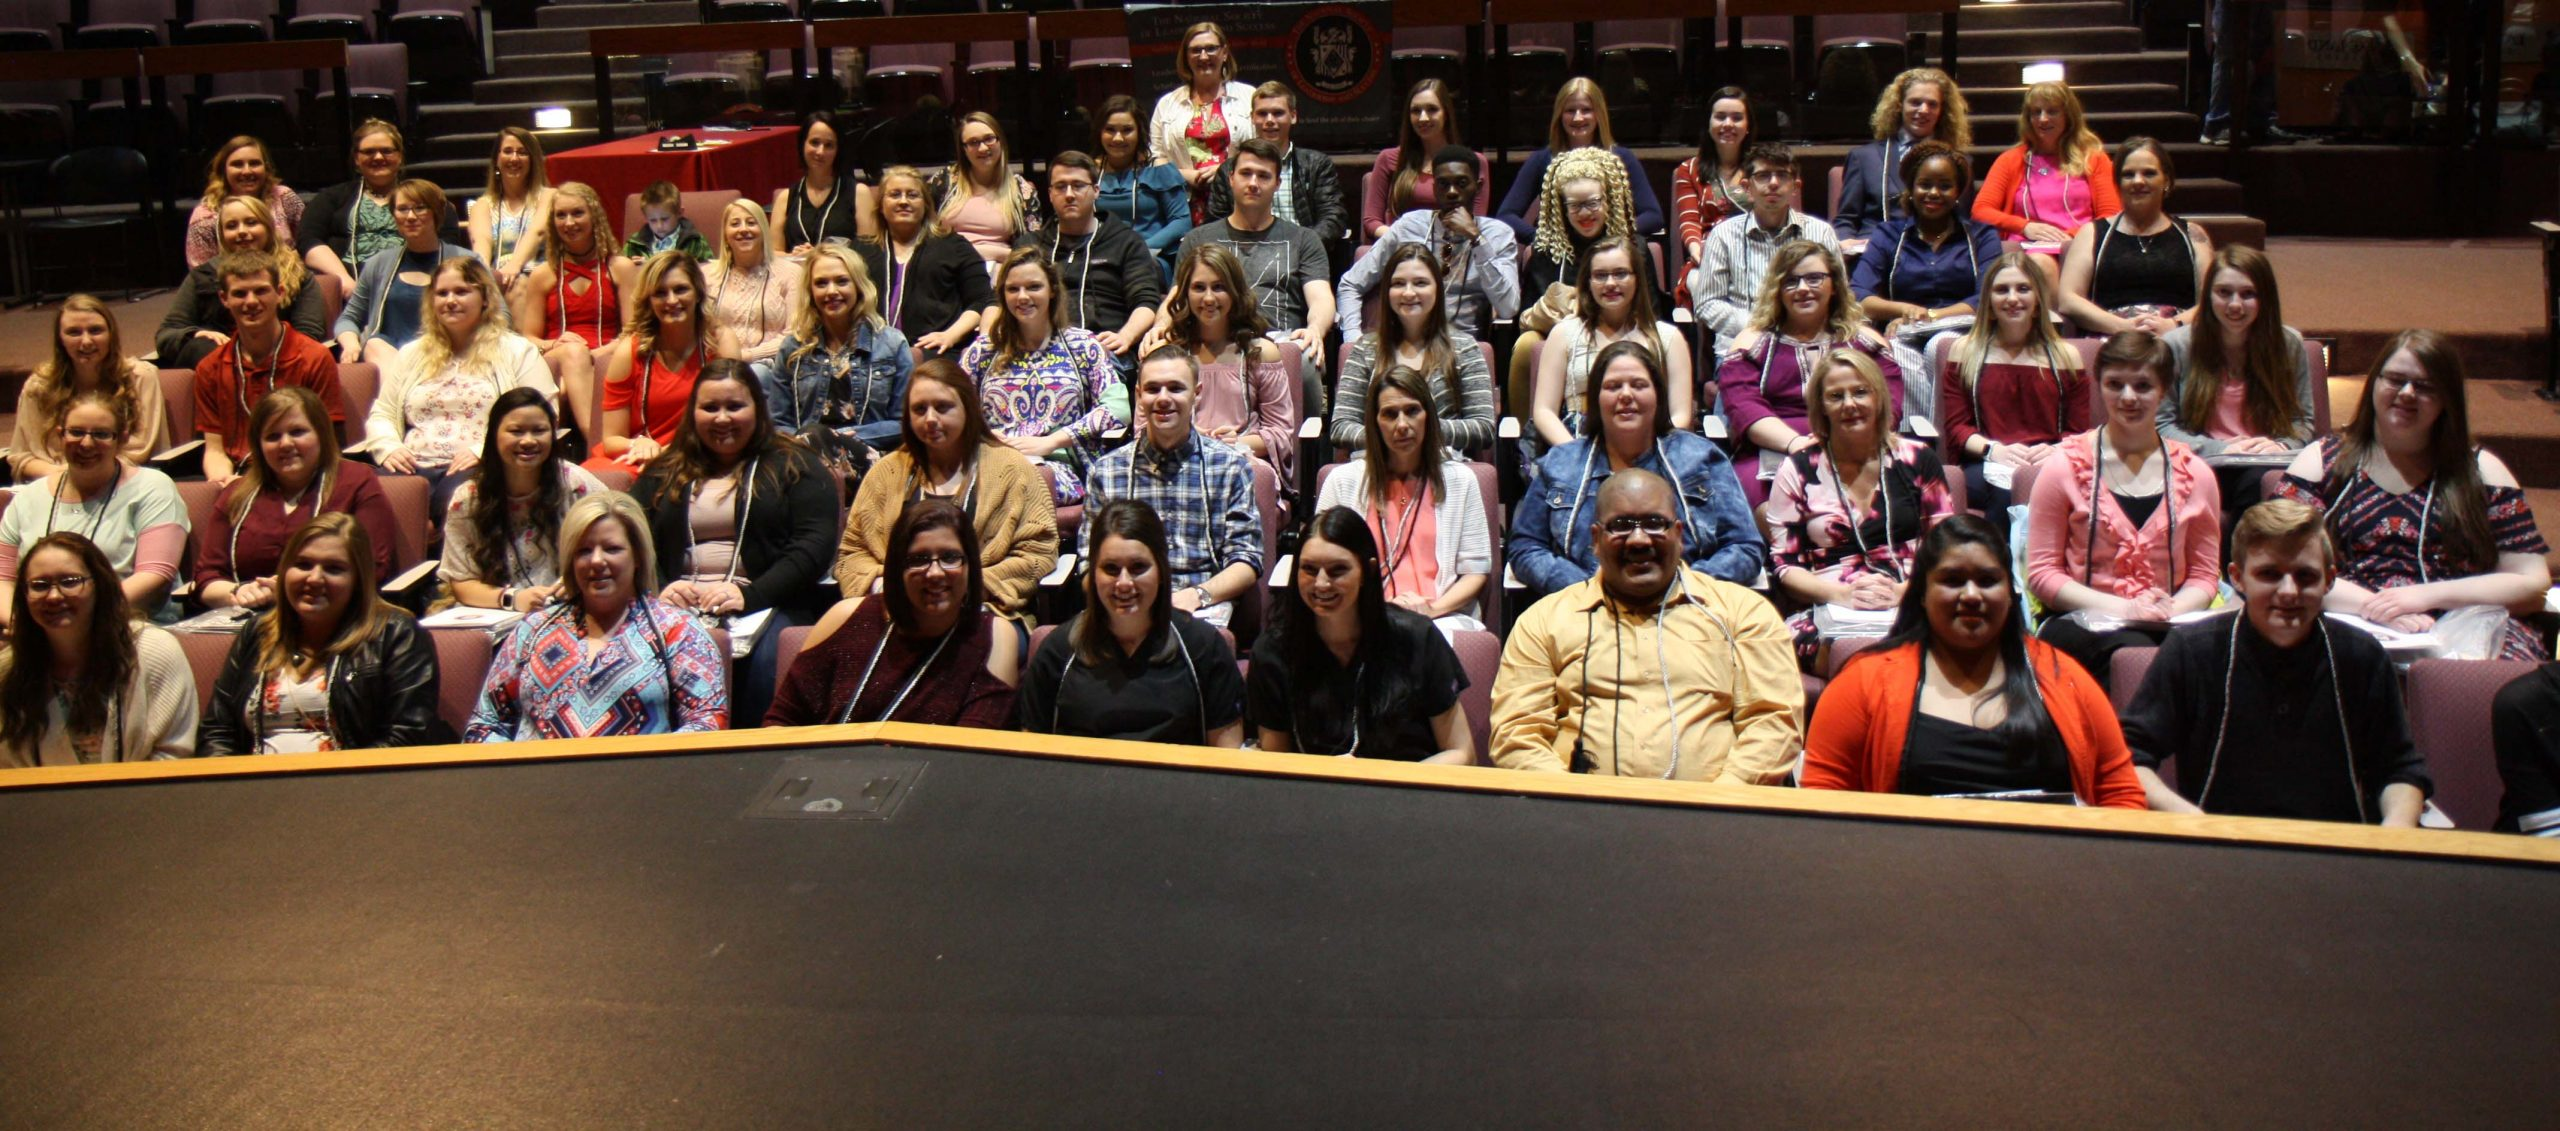 Lake Land College holds first induction ceremony for National Society of Leadership and Success chapter